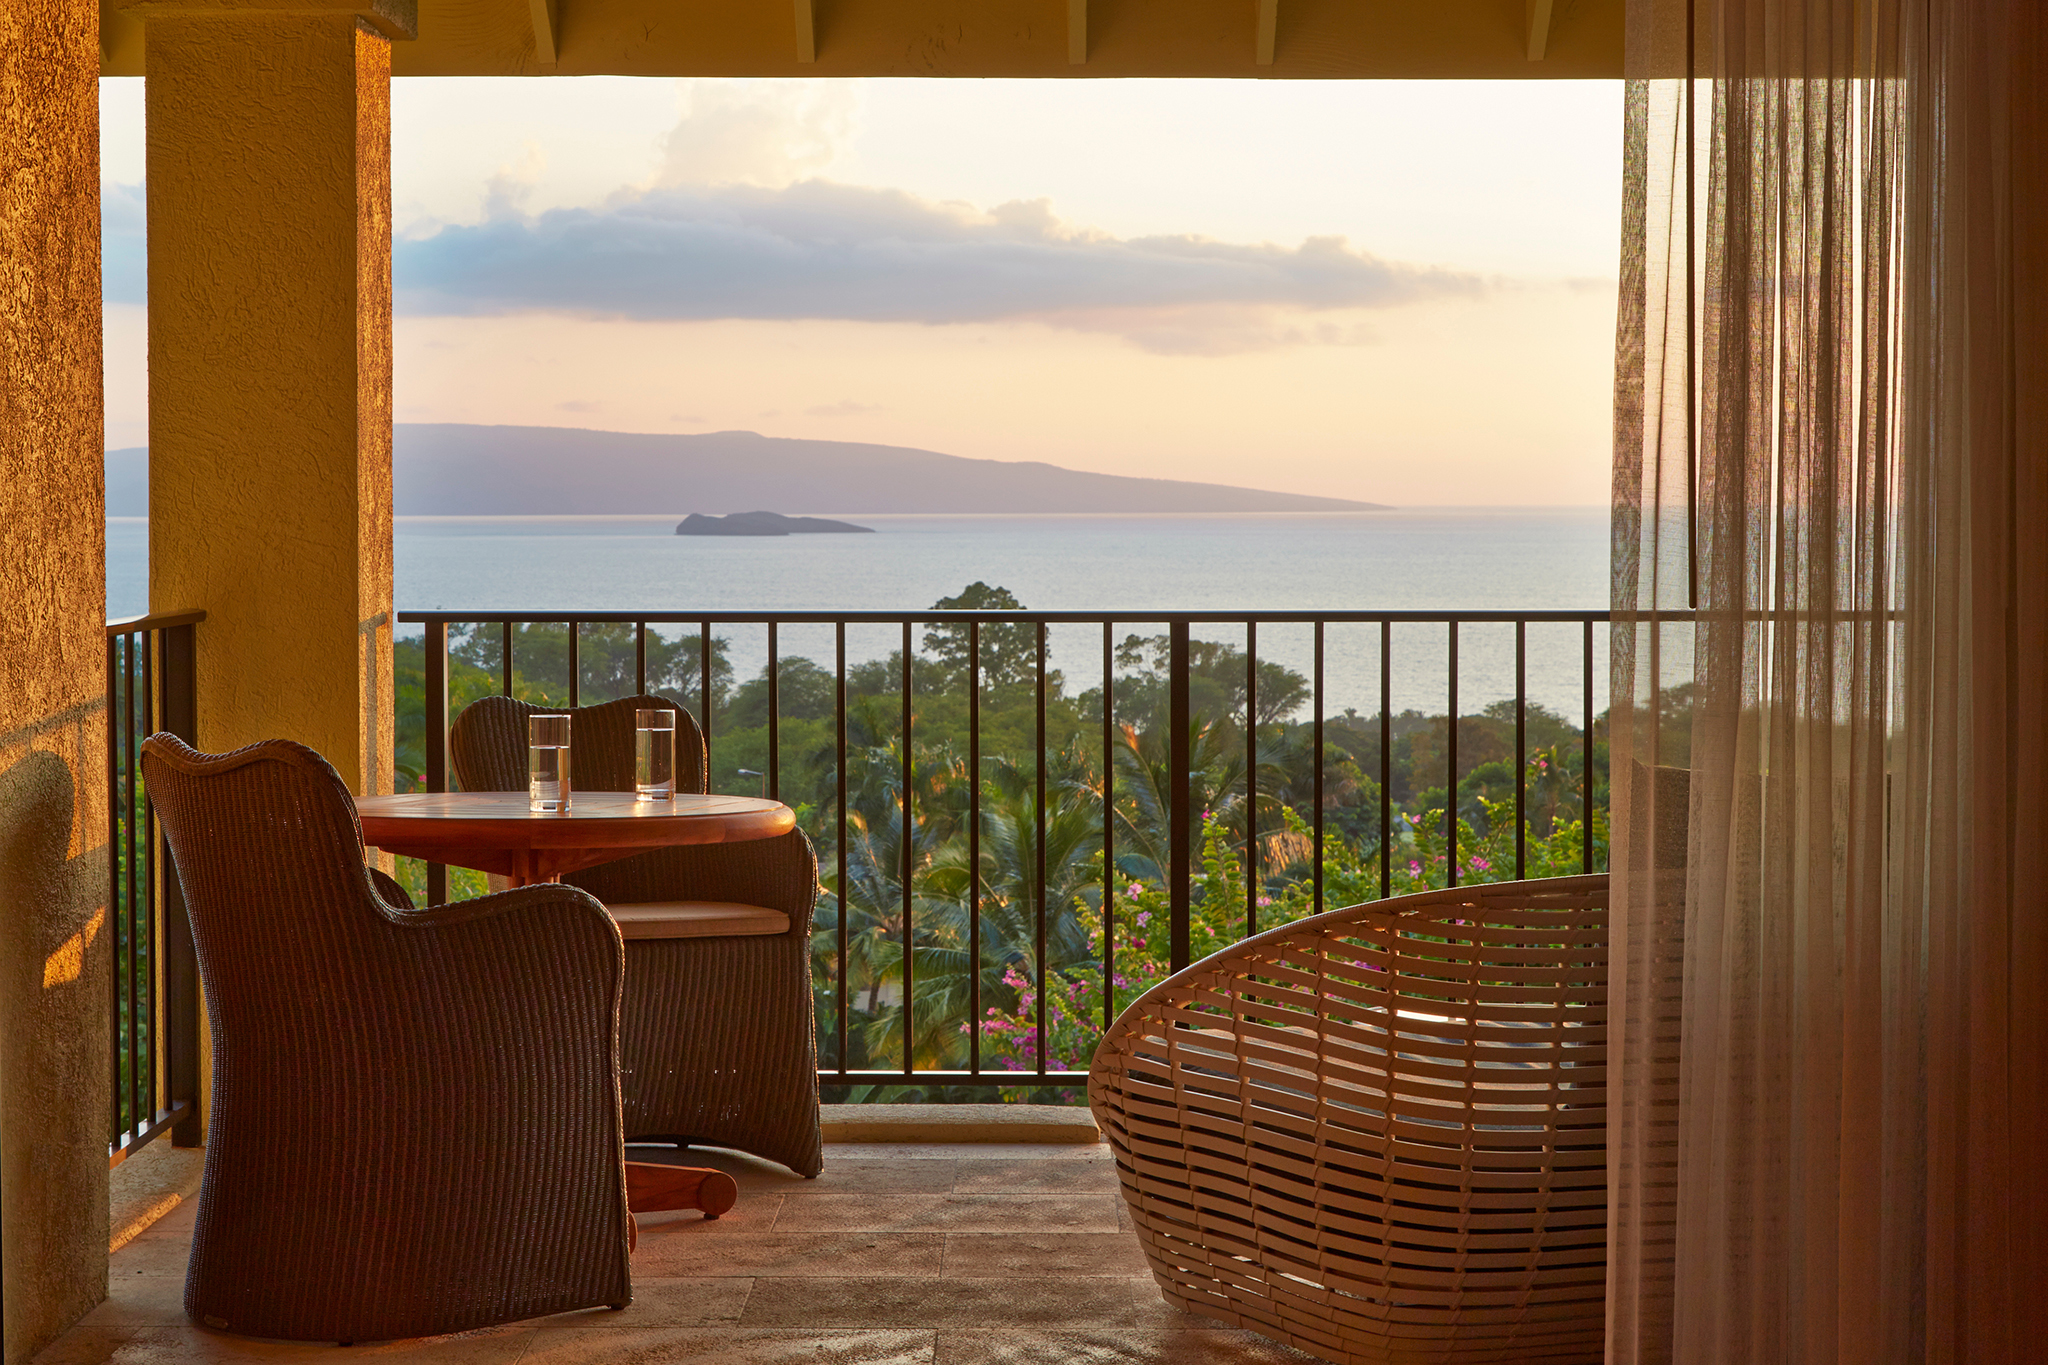 Hotel Wailea In Maui Hawaii